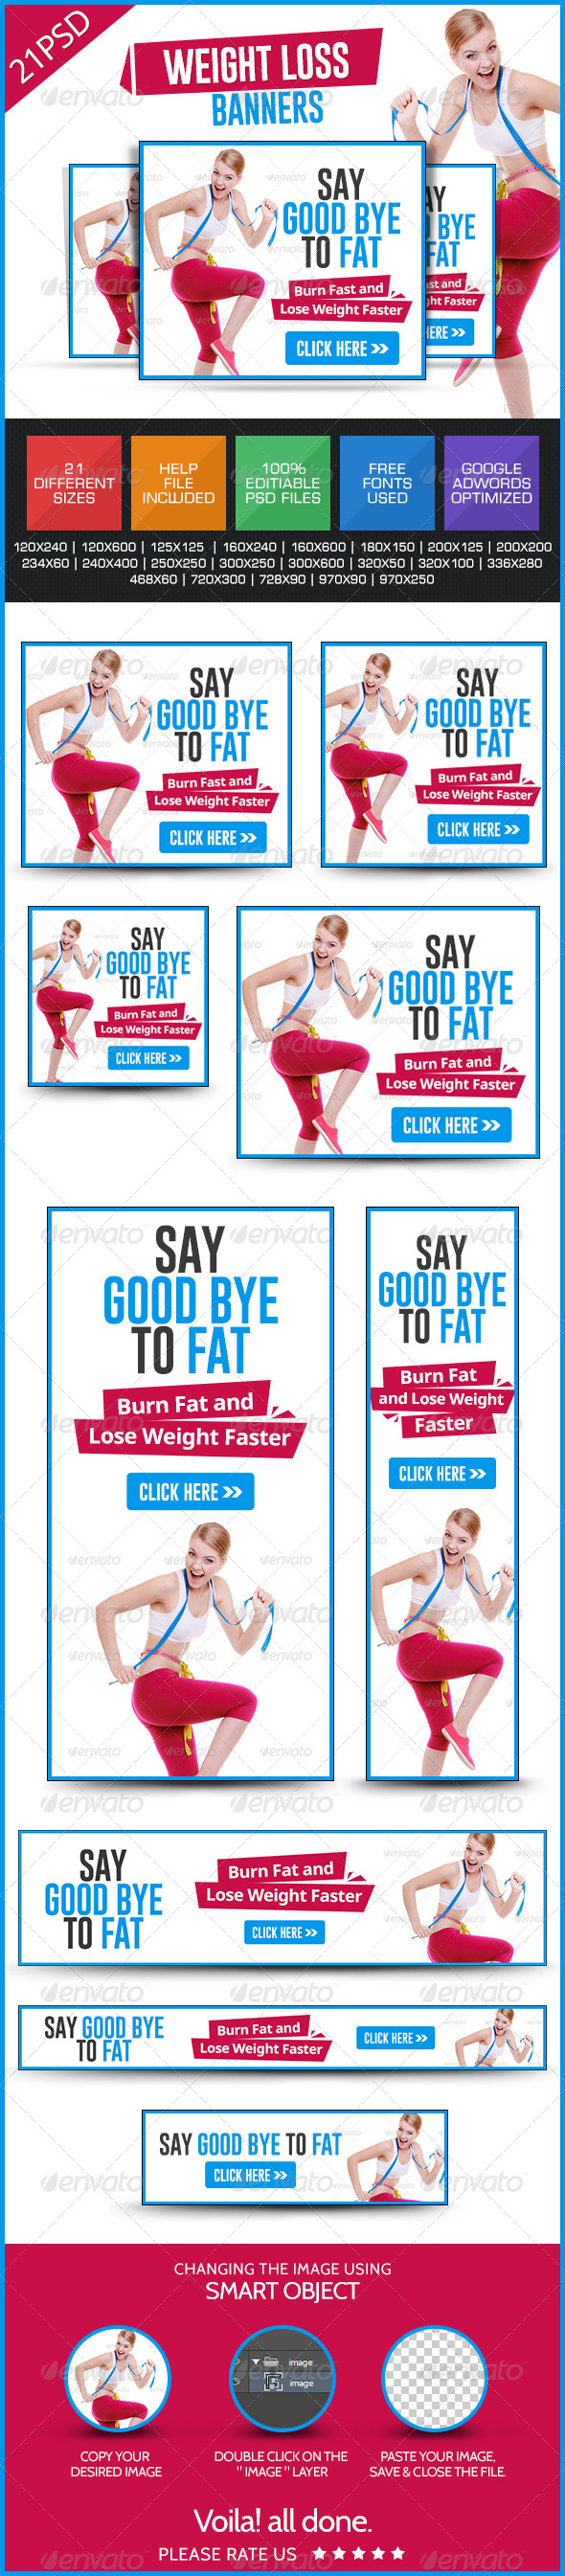 GraphicRiver Weight loss & GYM Banners 7860523